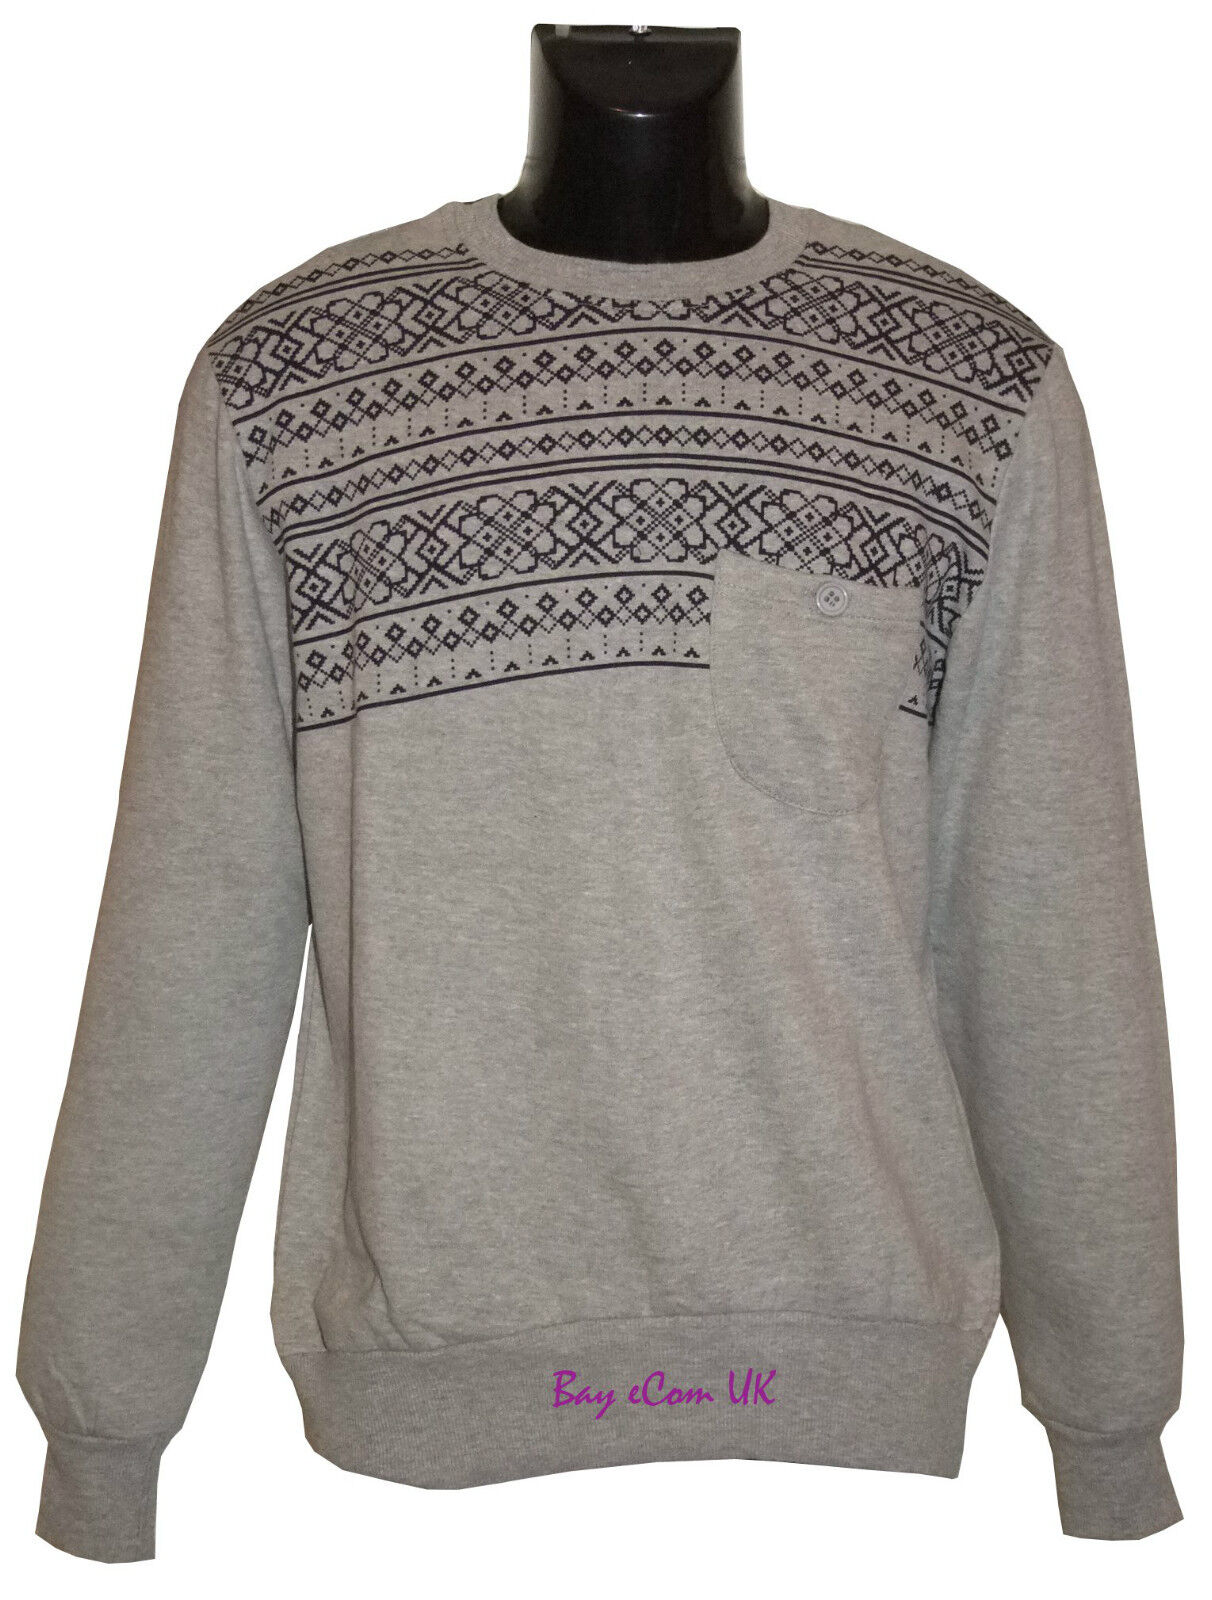 Men's Clothing Activewear Able Mens New Sweatshirt Sweater Crew Neck Pullover Jumper Fleece Aztec Pattern Warm